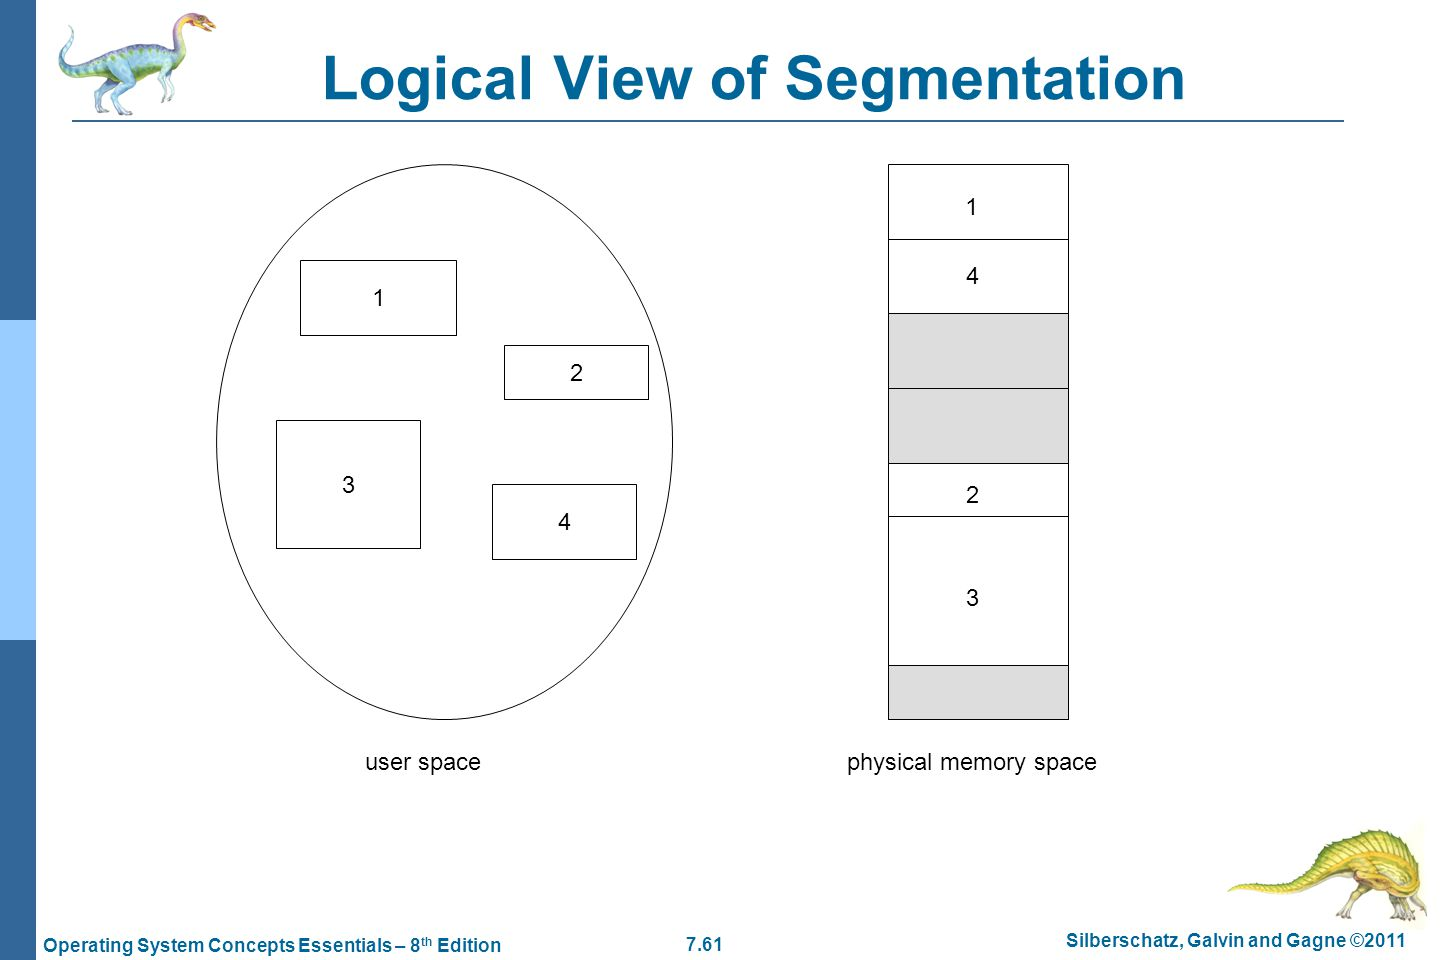 7.61 Silberschatz, Galvin and Gagne ©2011 Operating System Concepts Essentials – 8 th Edition Logical View of Segmentation 1 3 2 4 1 4 2 3 user spacephysical memory space